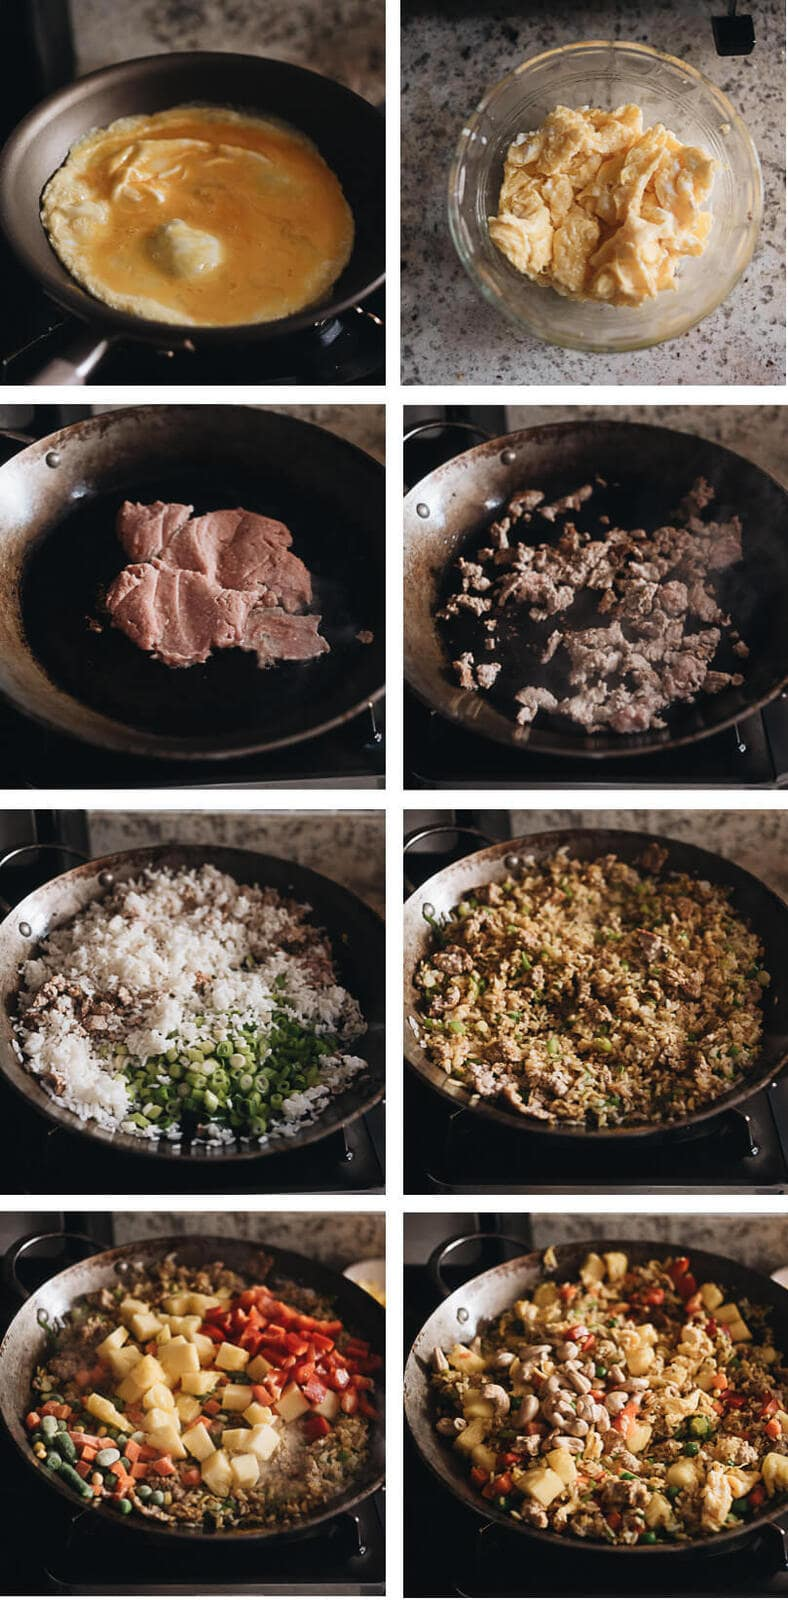 Pineapple fried rice cooking step by step